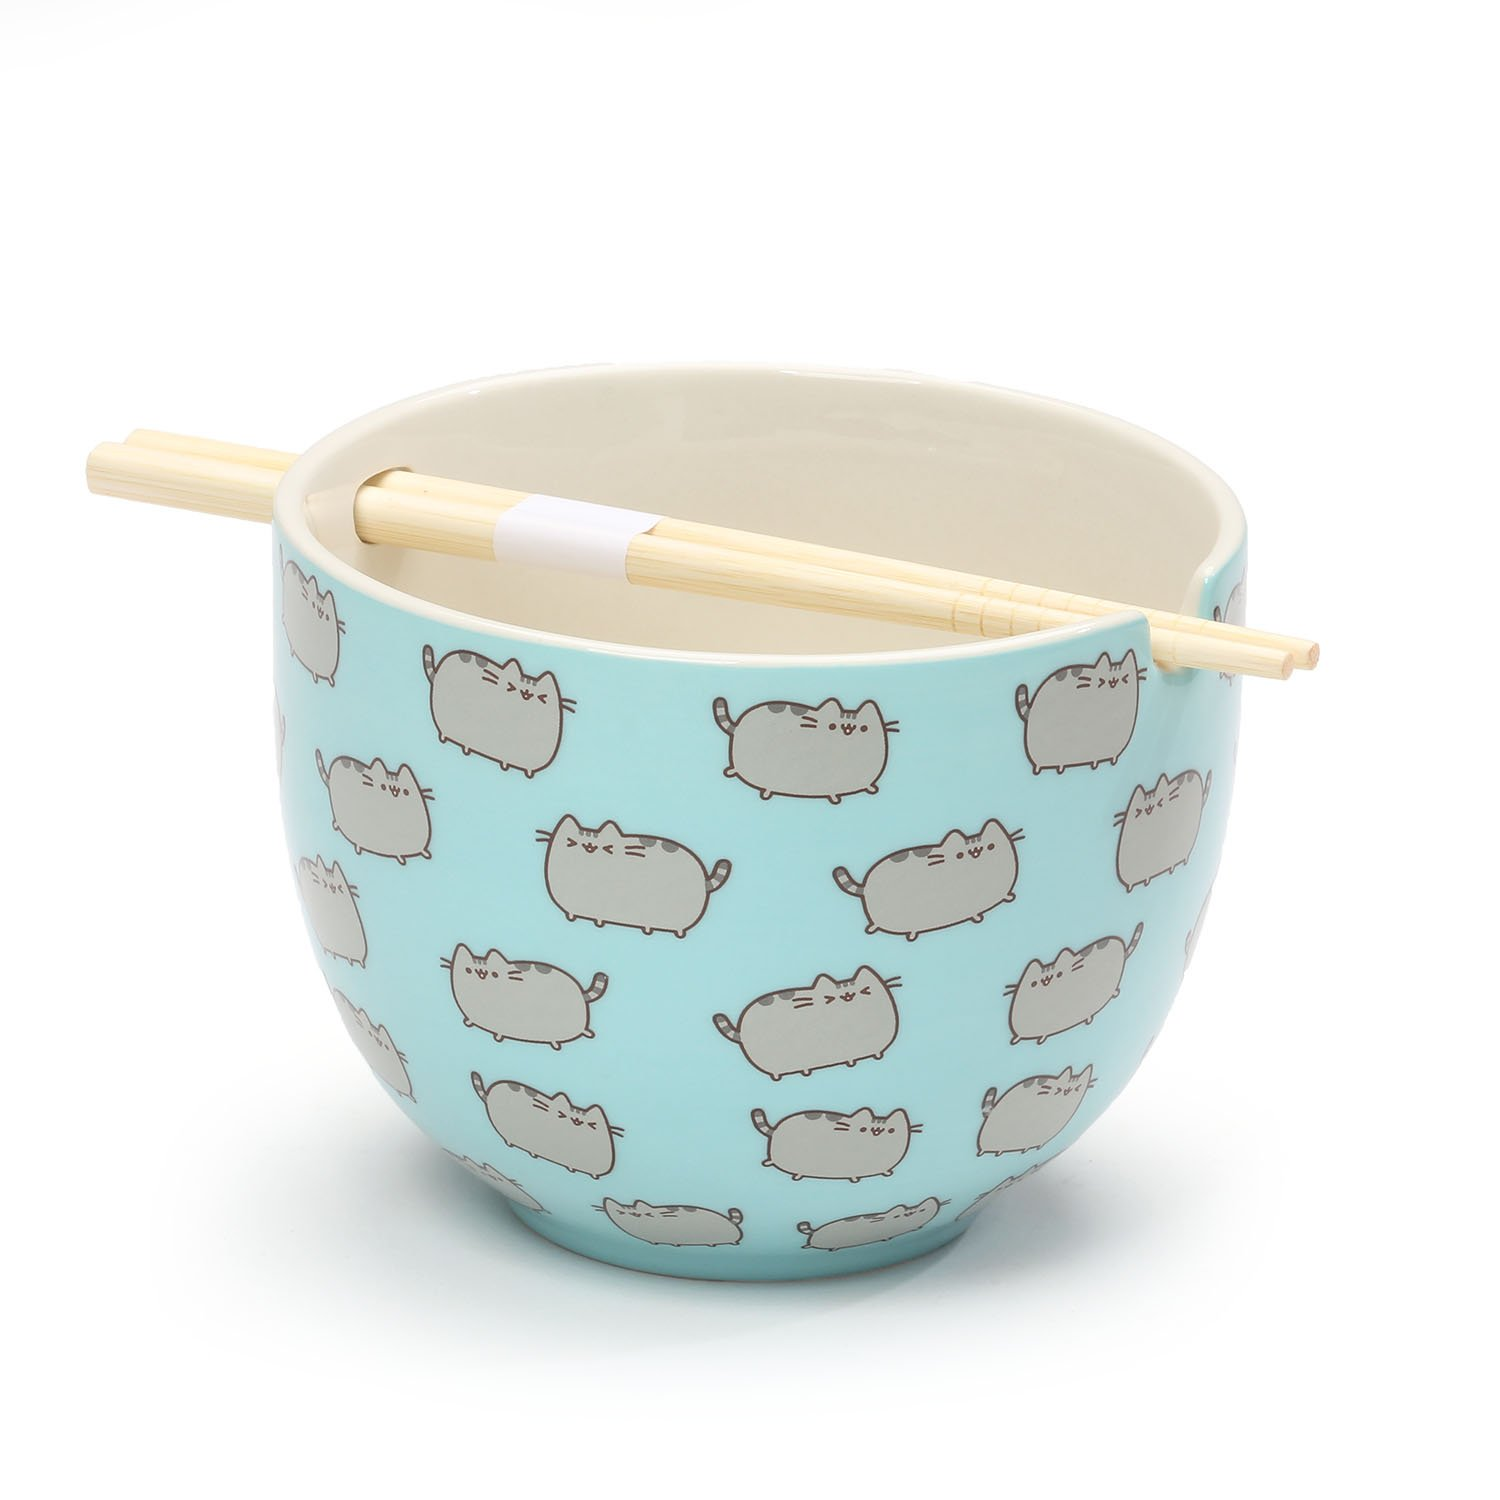 Our Name is Mud 6000288 Onim Pusheen Bowl Rice, Multi Gund